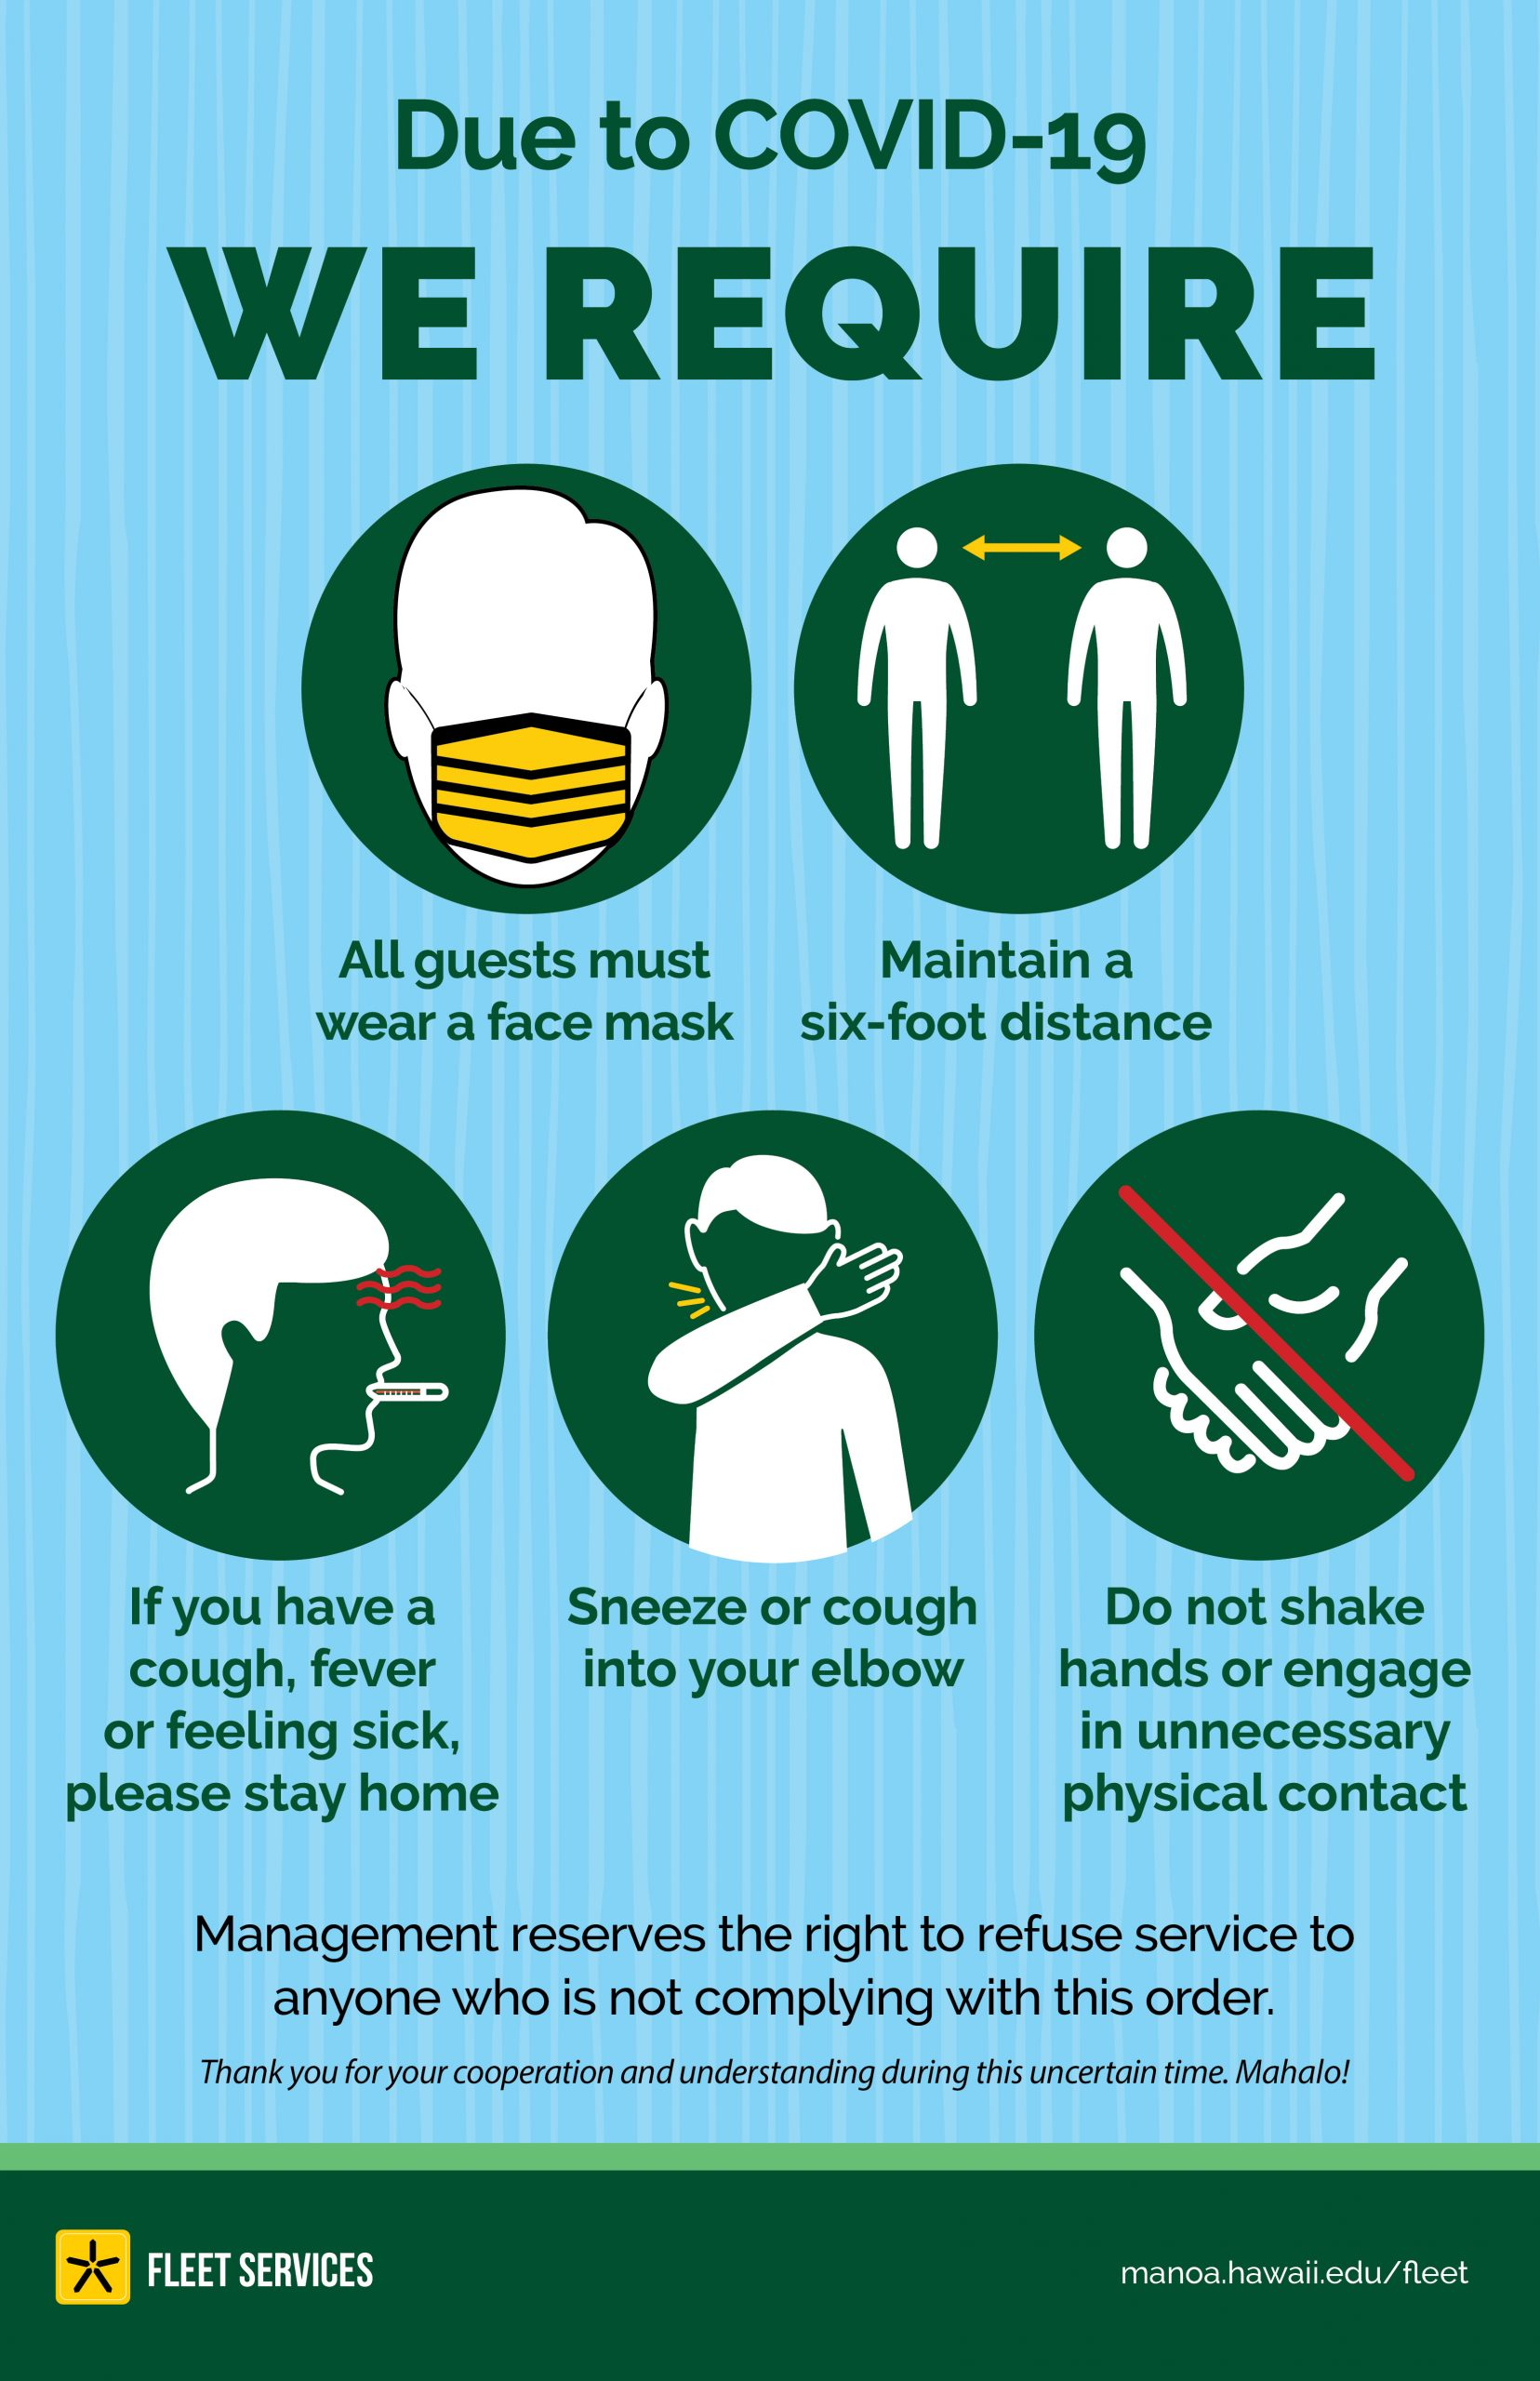 Due to COVID-19, we require: all guests must wear a face mask, maintain a 6-ft distance, stay home if you are sick, do not engage in unnecessary physical contact